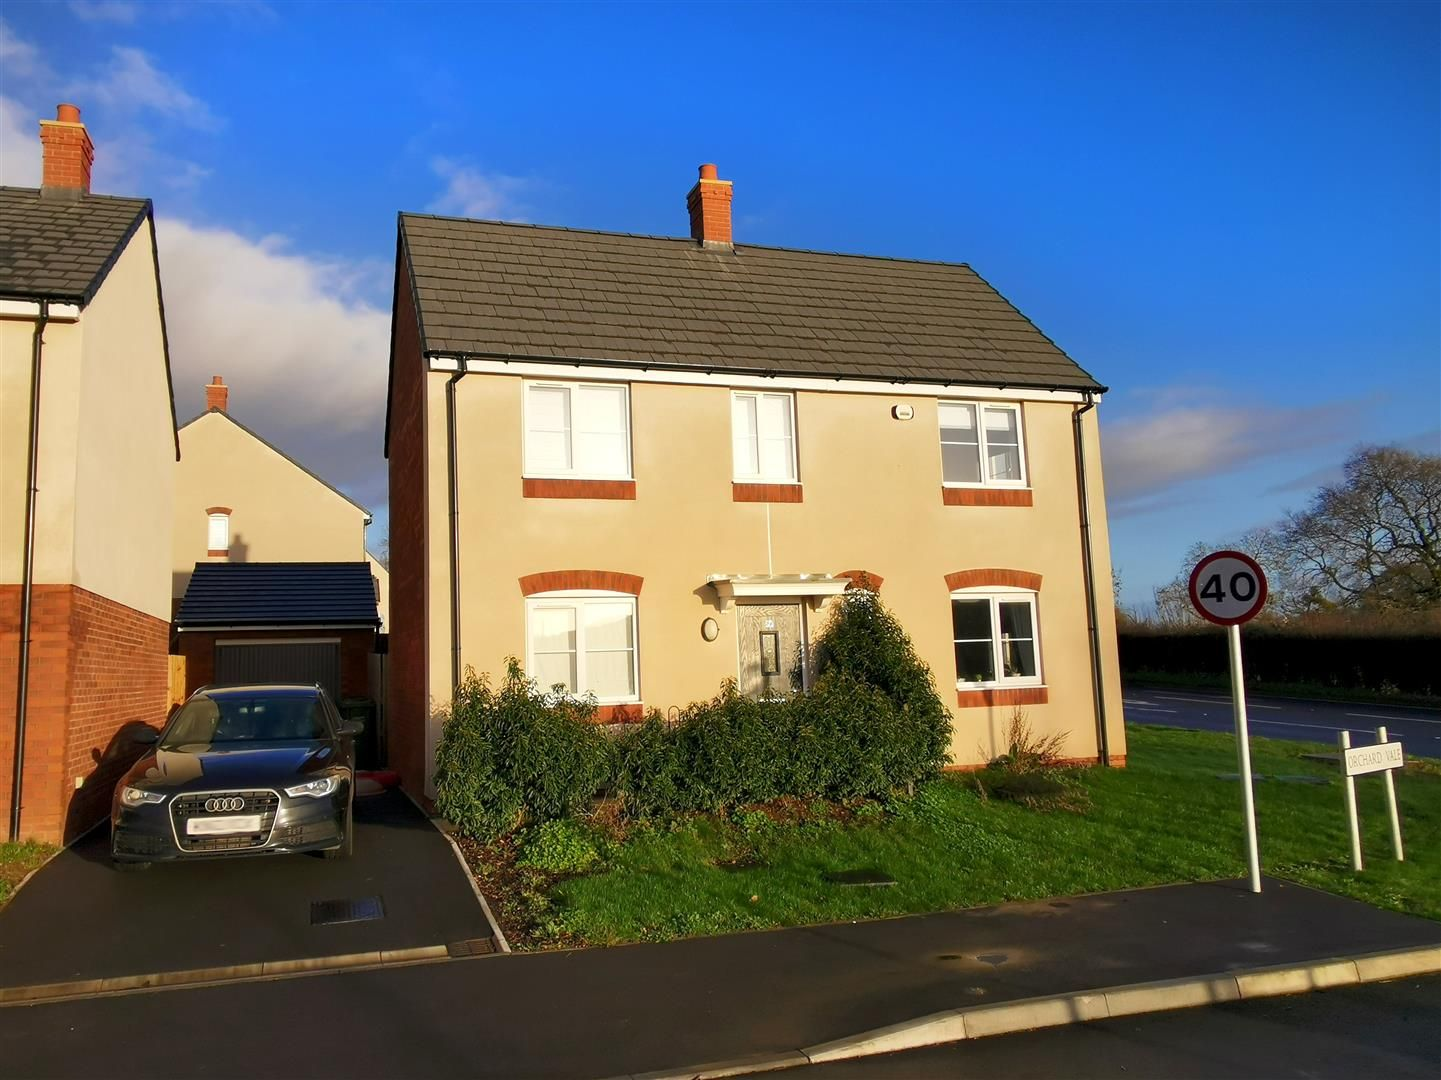 4 bed detached for sale in Bartestree, HR1